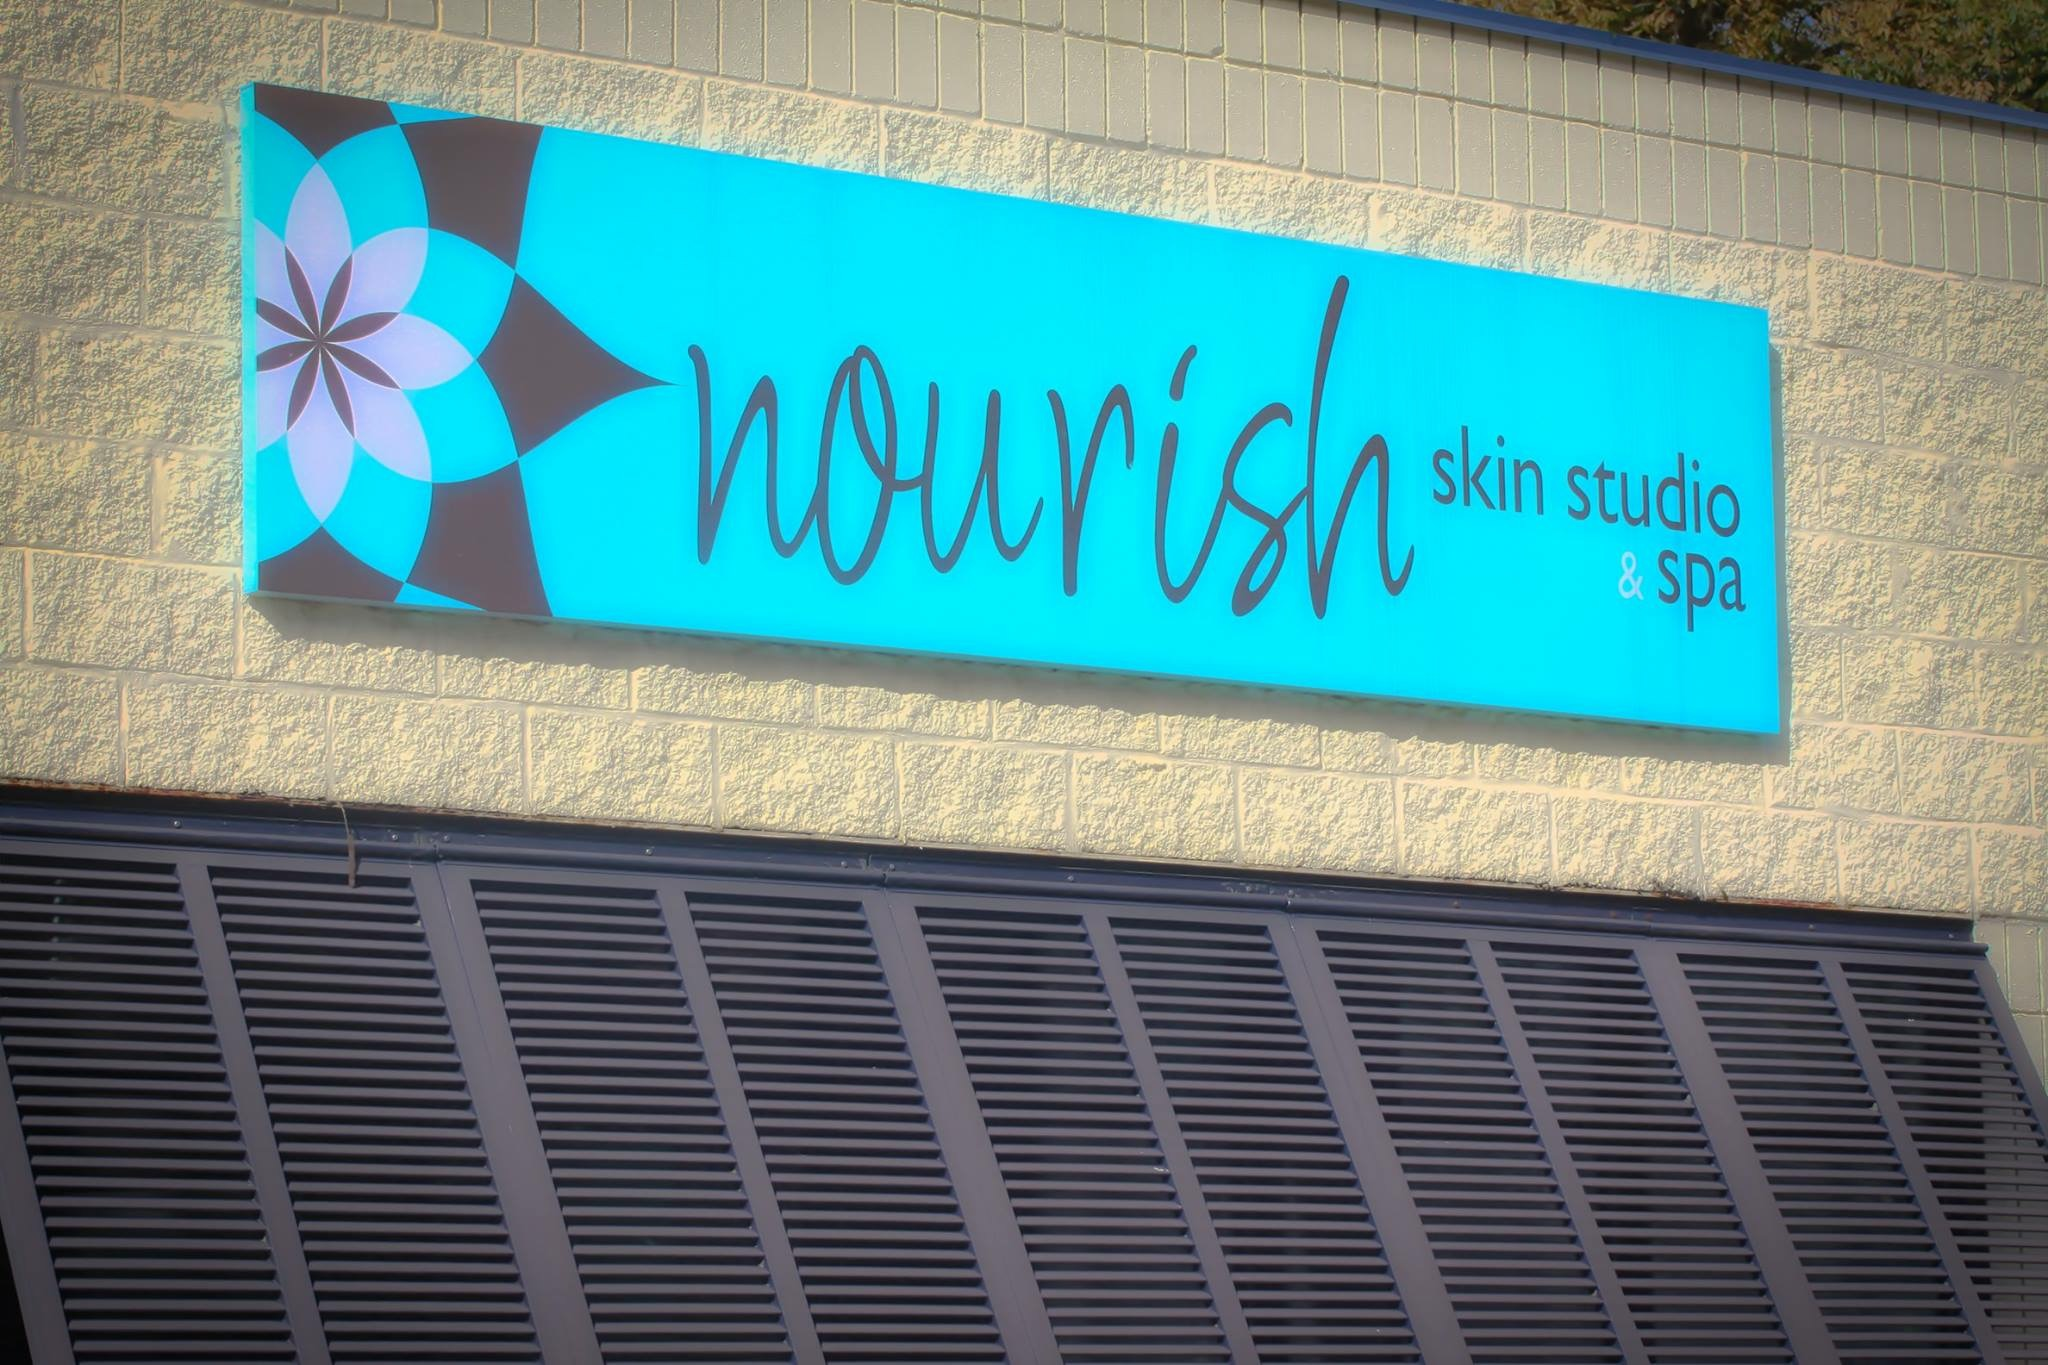 nourish skin studio and spa